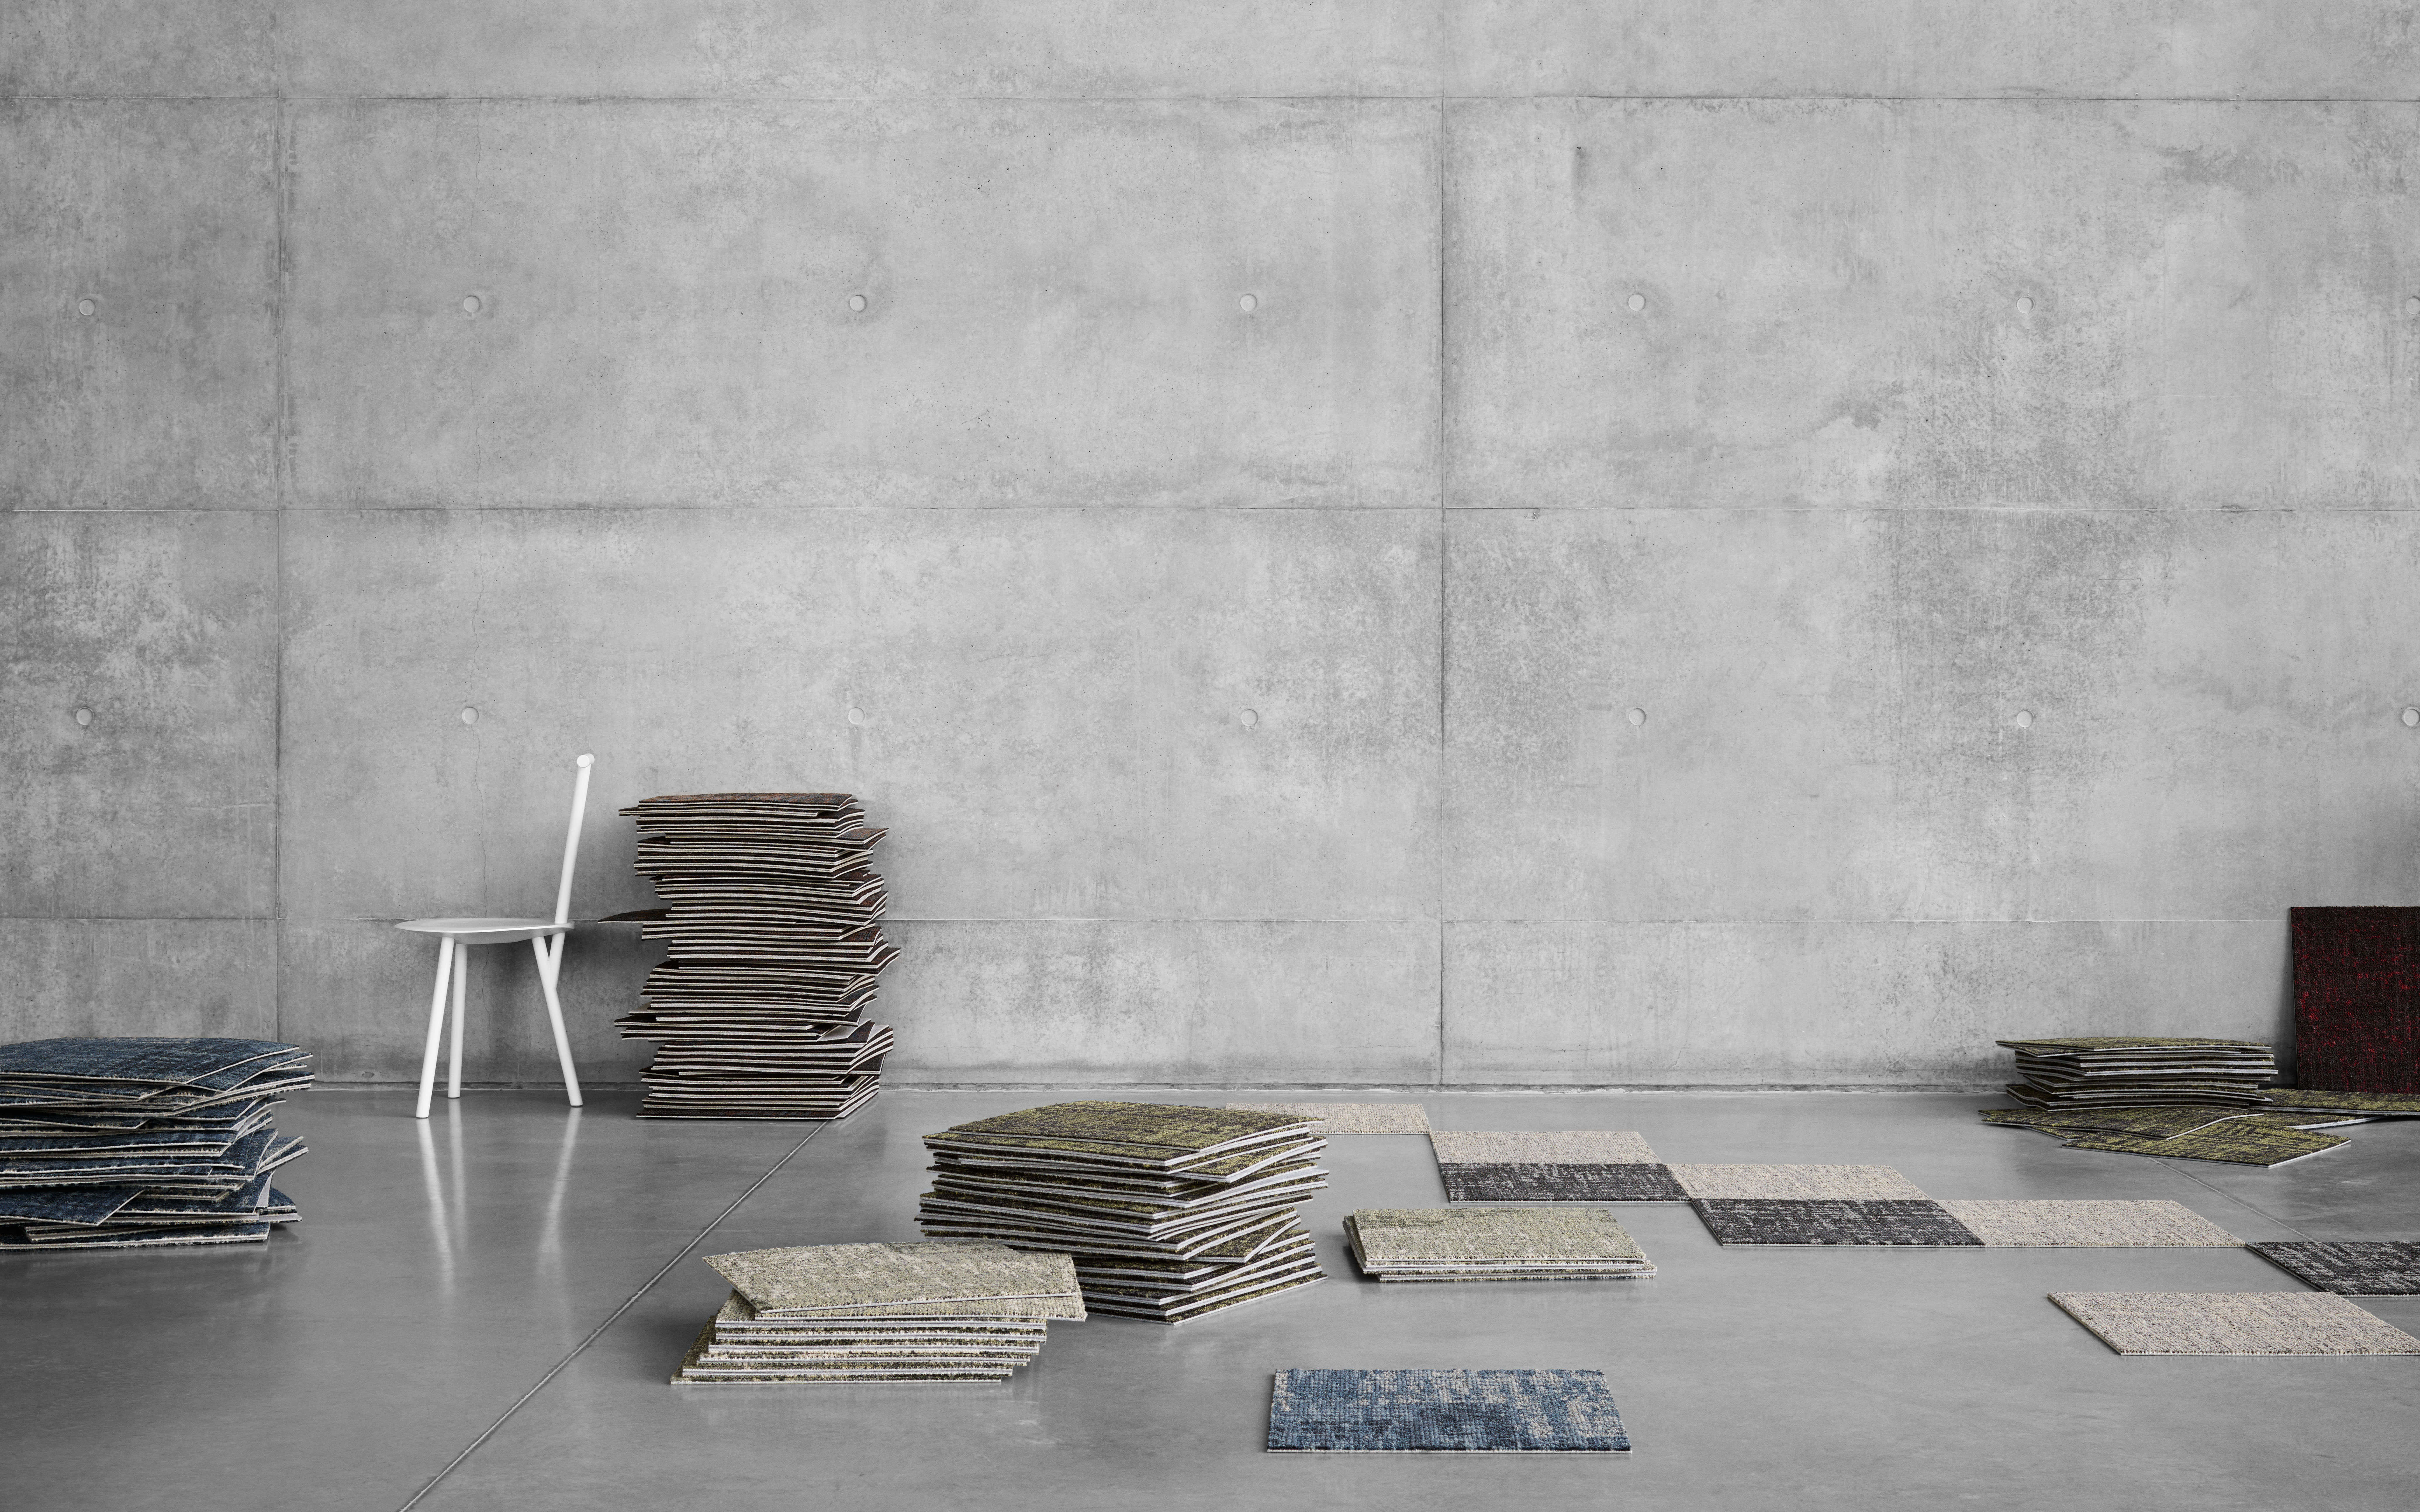 recycled-carpet-tiles-by-ege